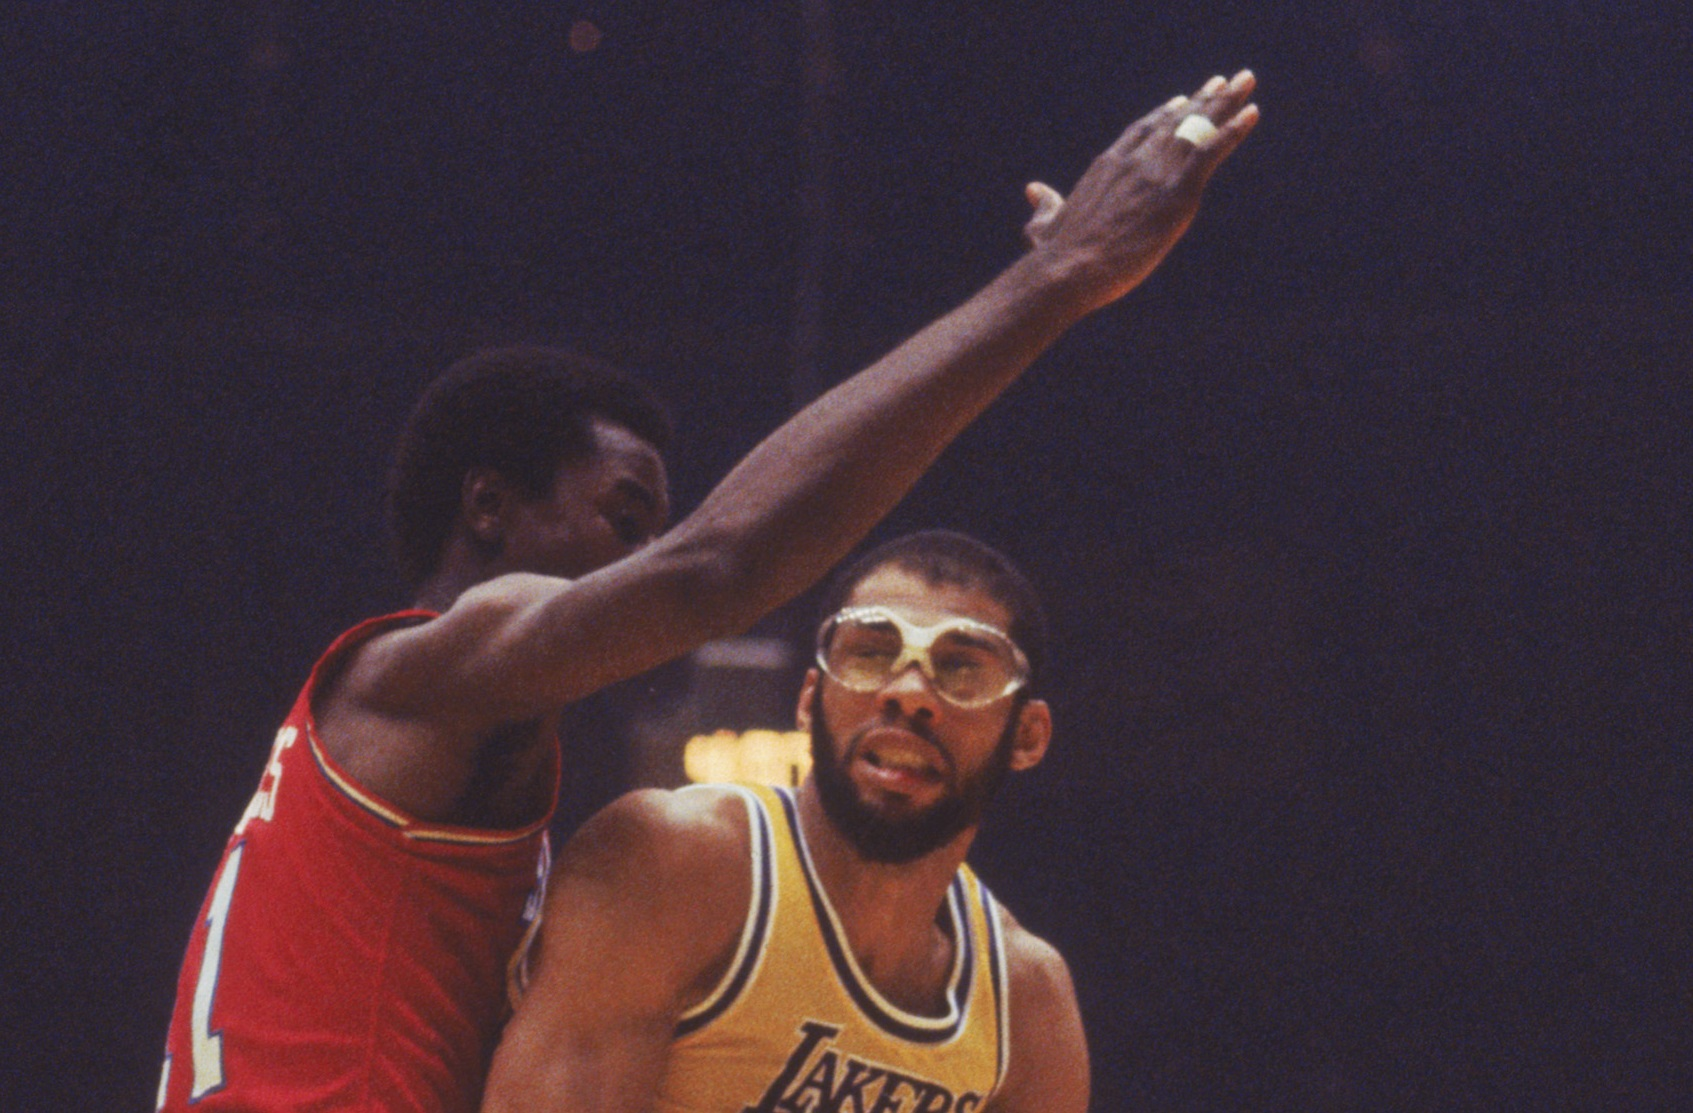 Kareem Abdul-Jabbar's goggles were a trademark of his Hall of Fame career in the NBA. | Focus on Sport via Getty Images